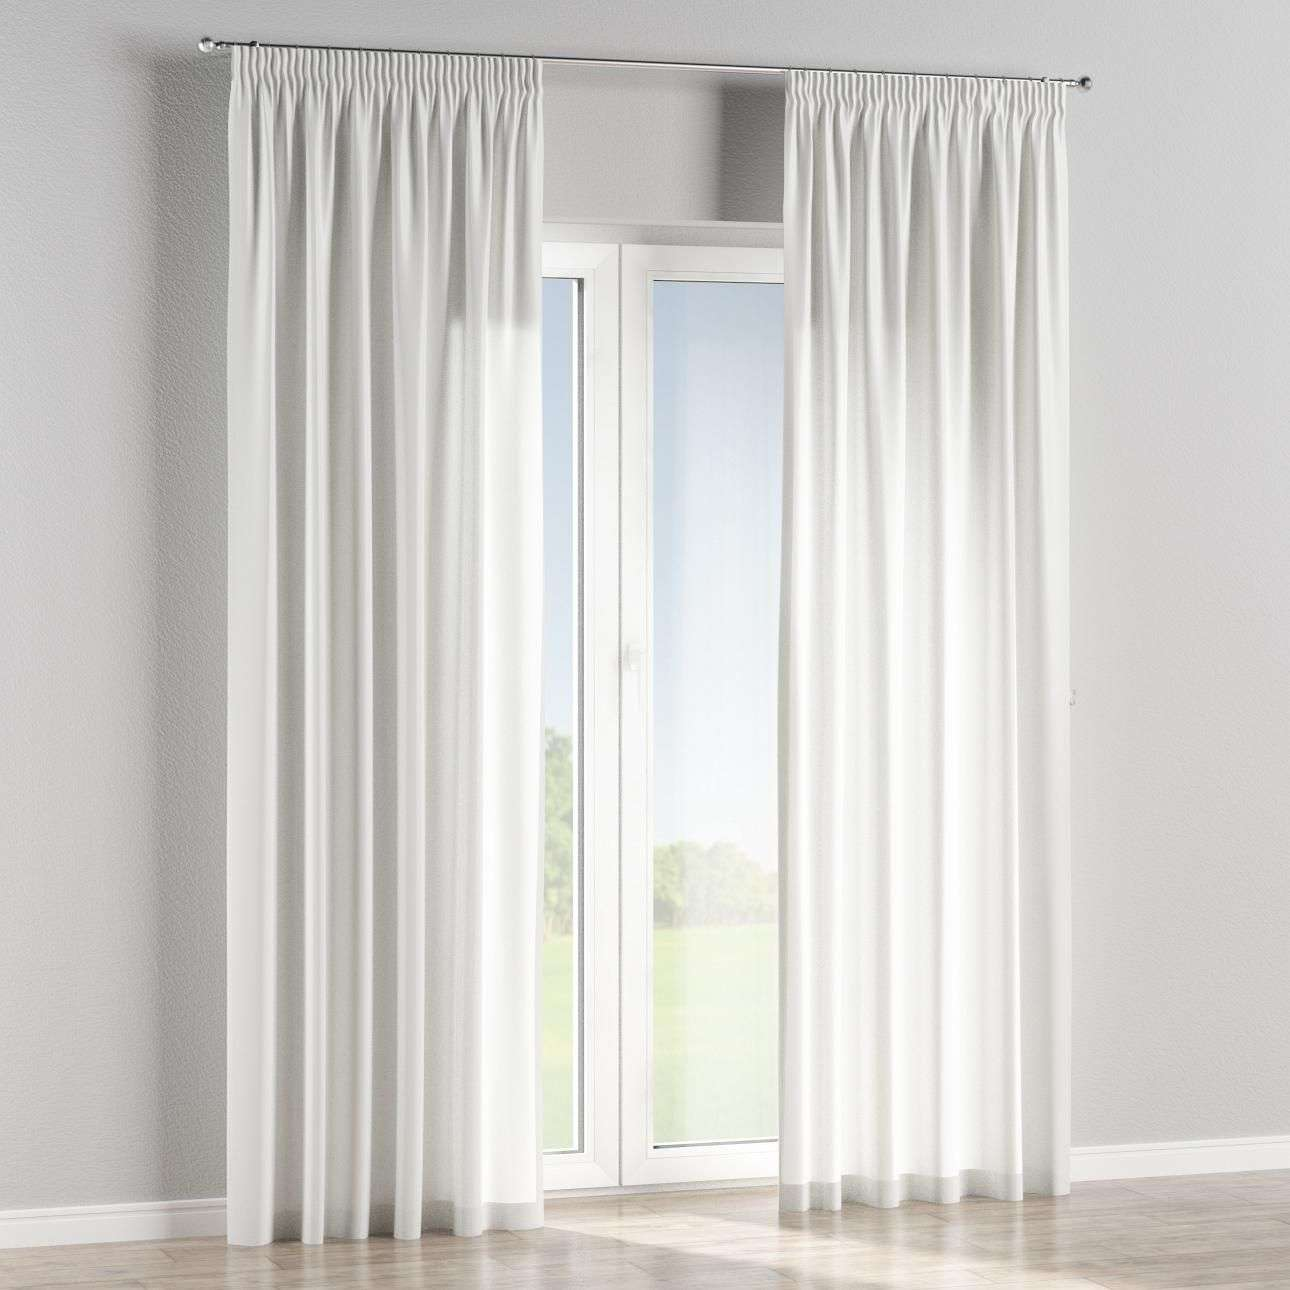 Pencil pleat curtains in collection Ashley, fabric: 137-73